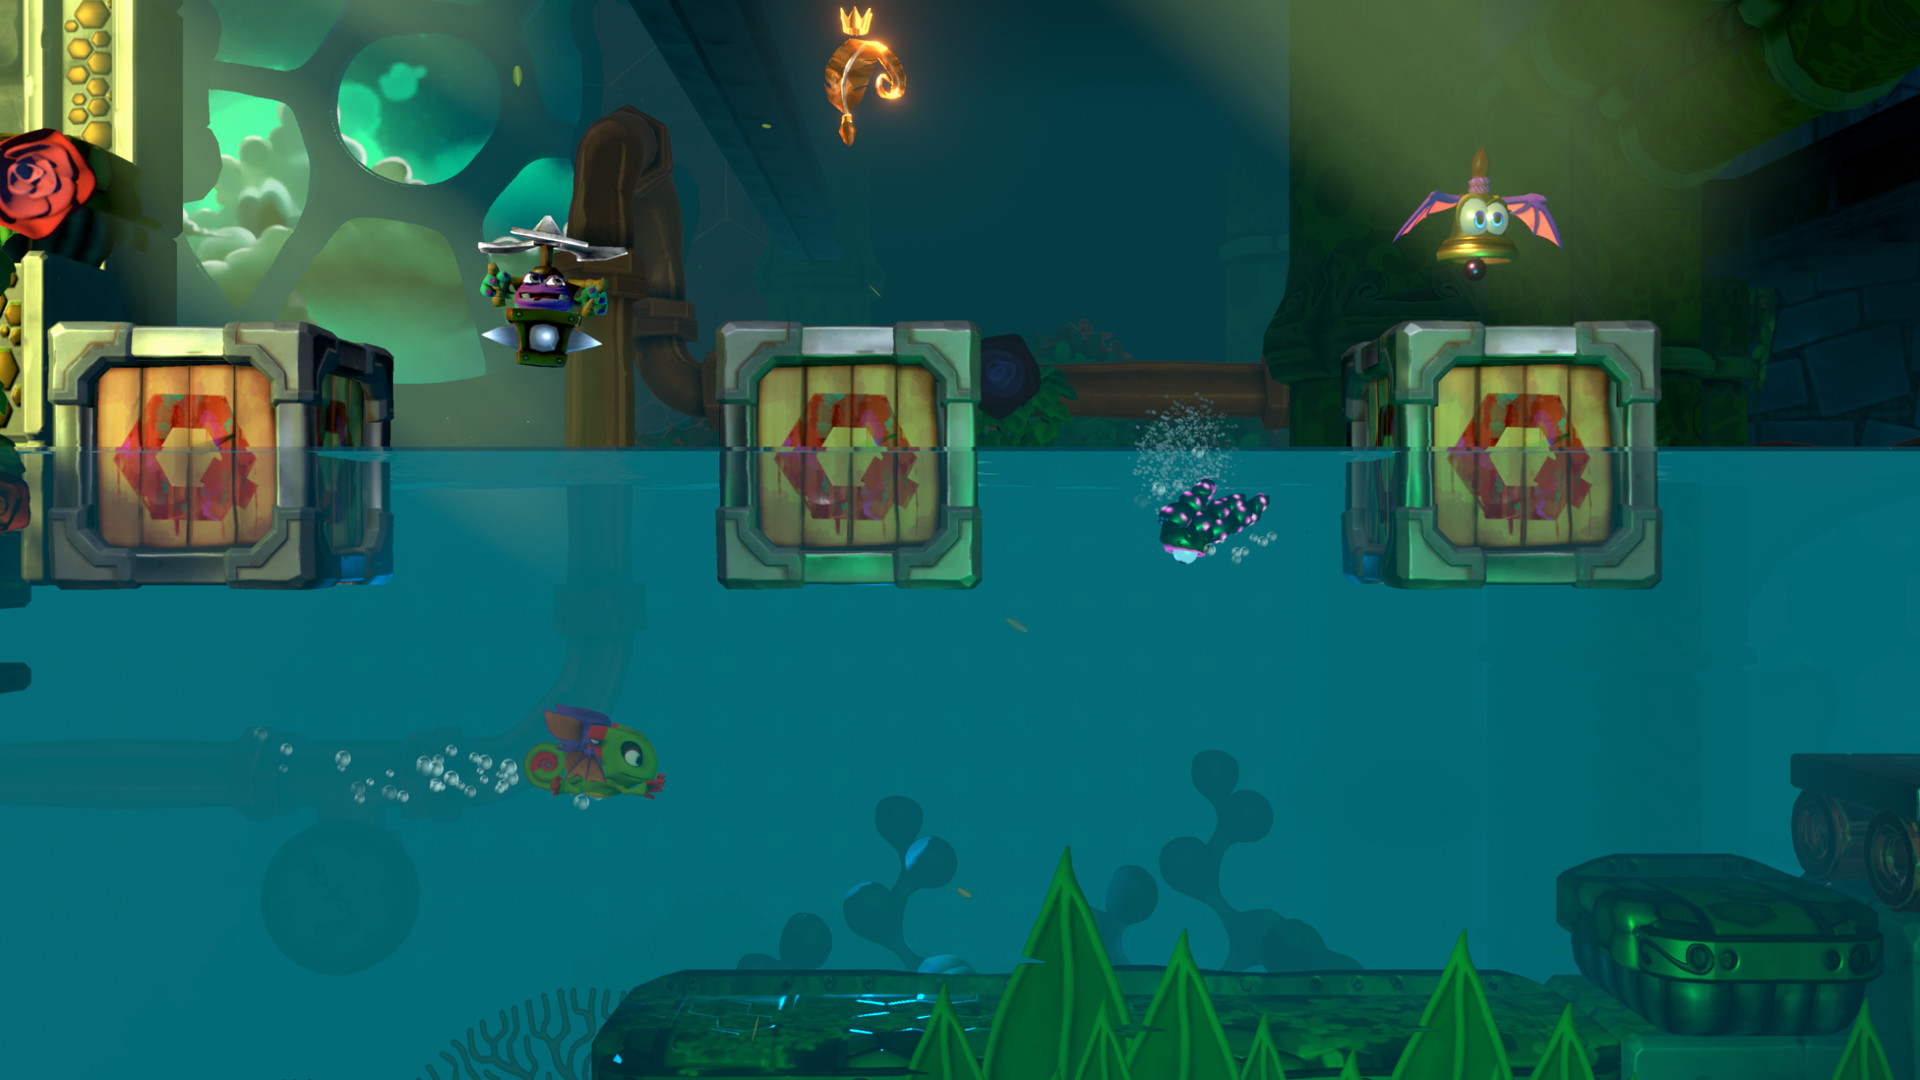 p5lq8x9h0t_Yooka-Laylee and the Impossible Lair 2019-11-18 23-53-47.jpg